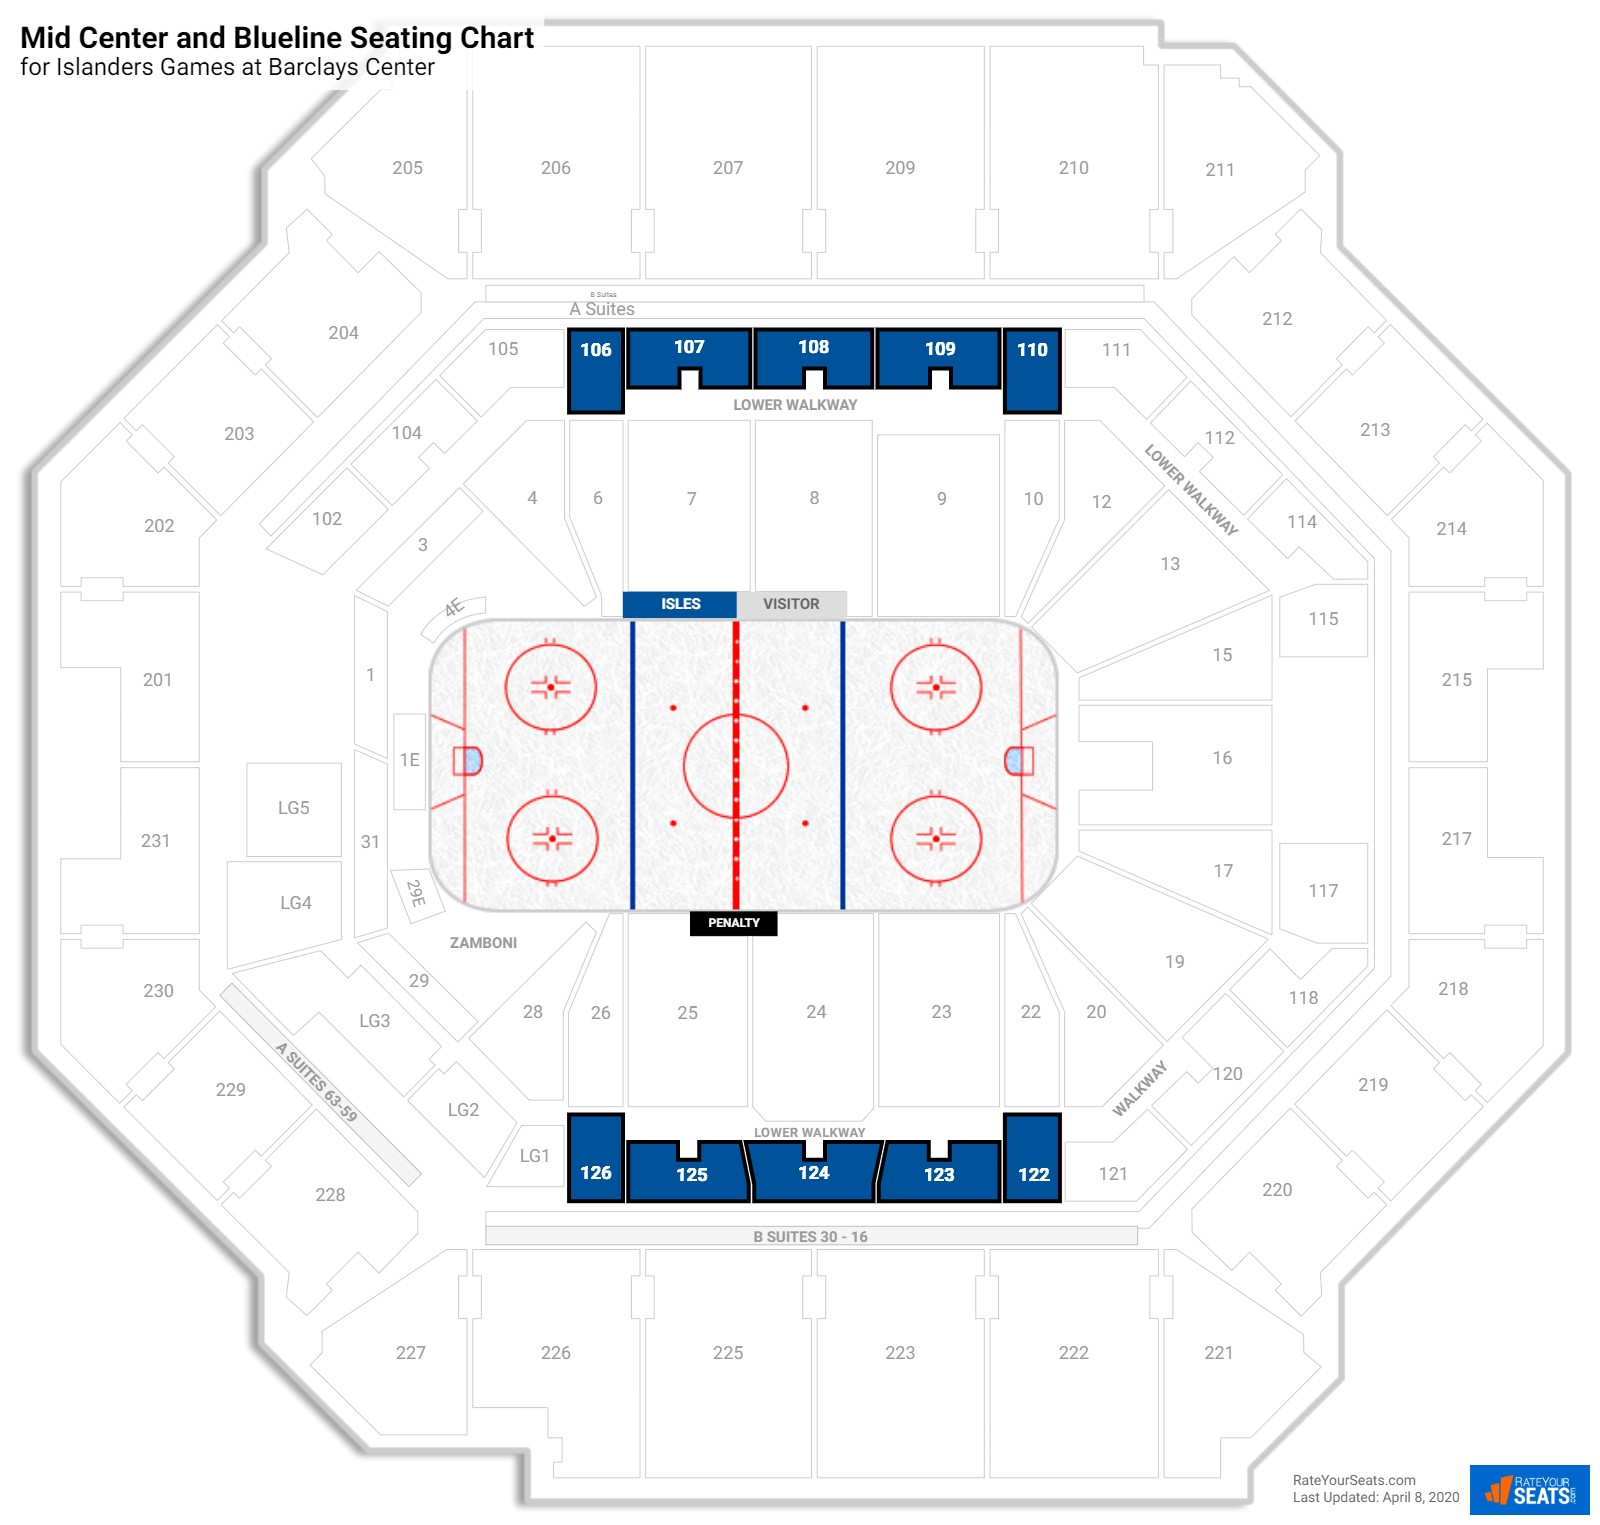 Barclays Center Mid Level Side seating chart